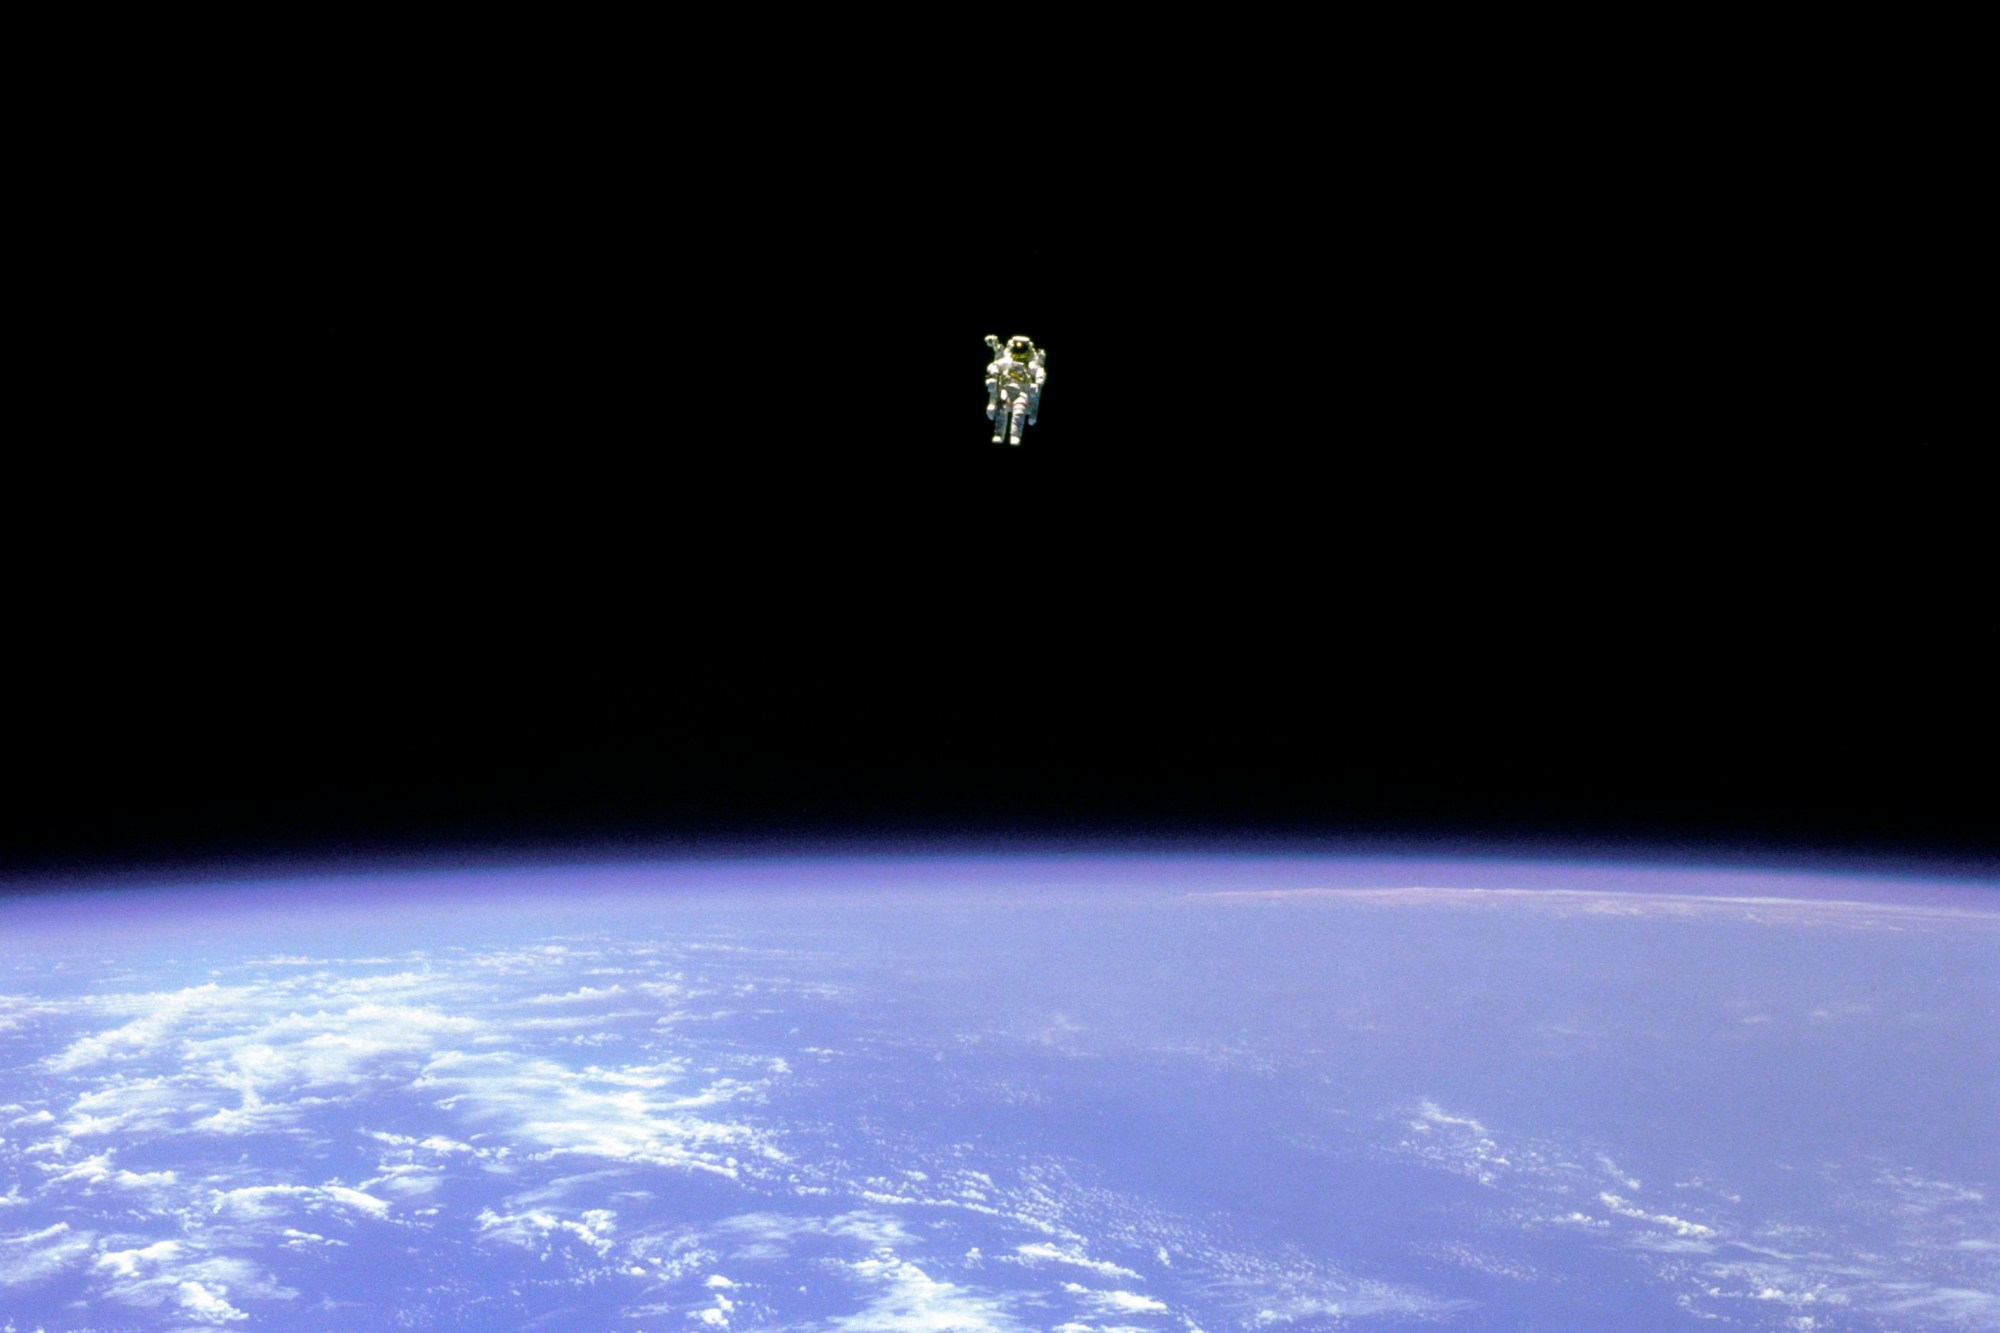 FILE - In this Feb. 12, 1984 photo made available by NASA, astronaut Bruce McCandless uses a nitrogen jet-propelled backpack, a Manned Manuevering Unit, outside the space shuttle Challenger. (NASA via AP)